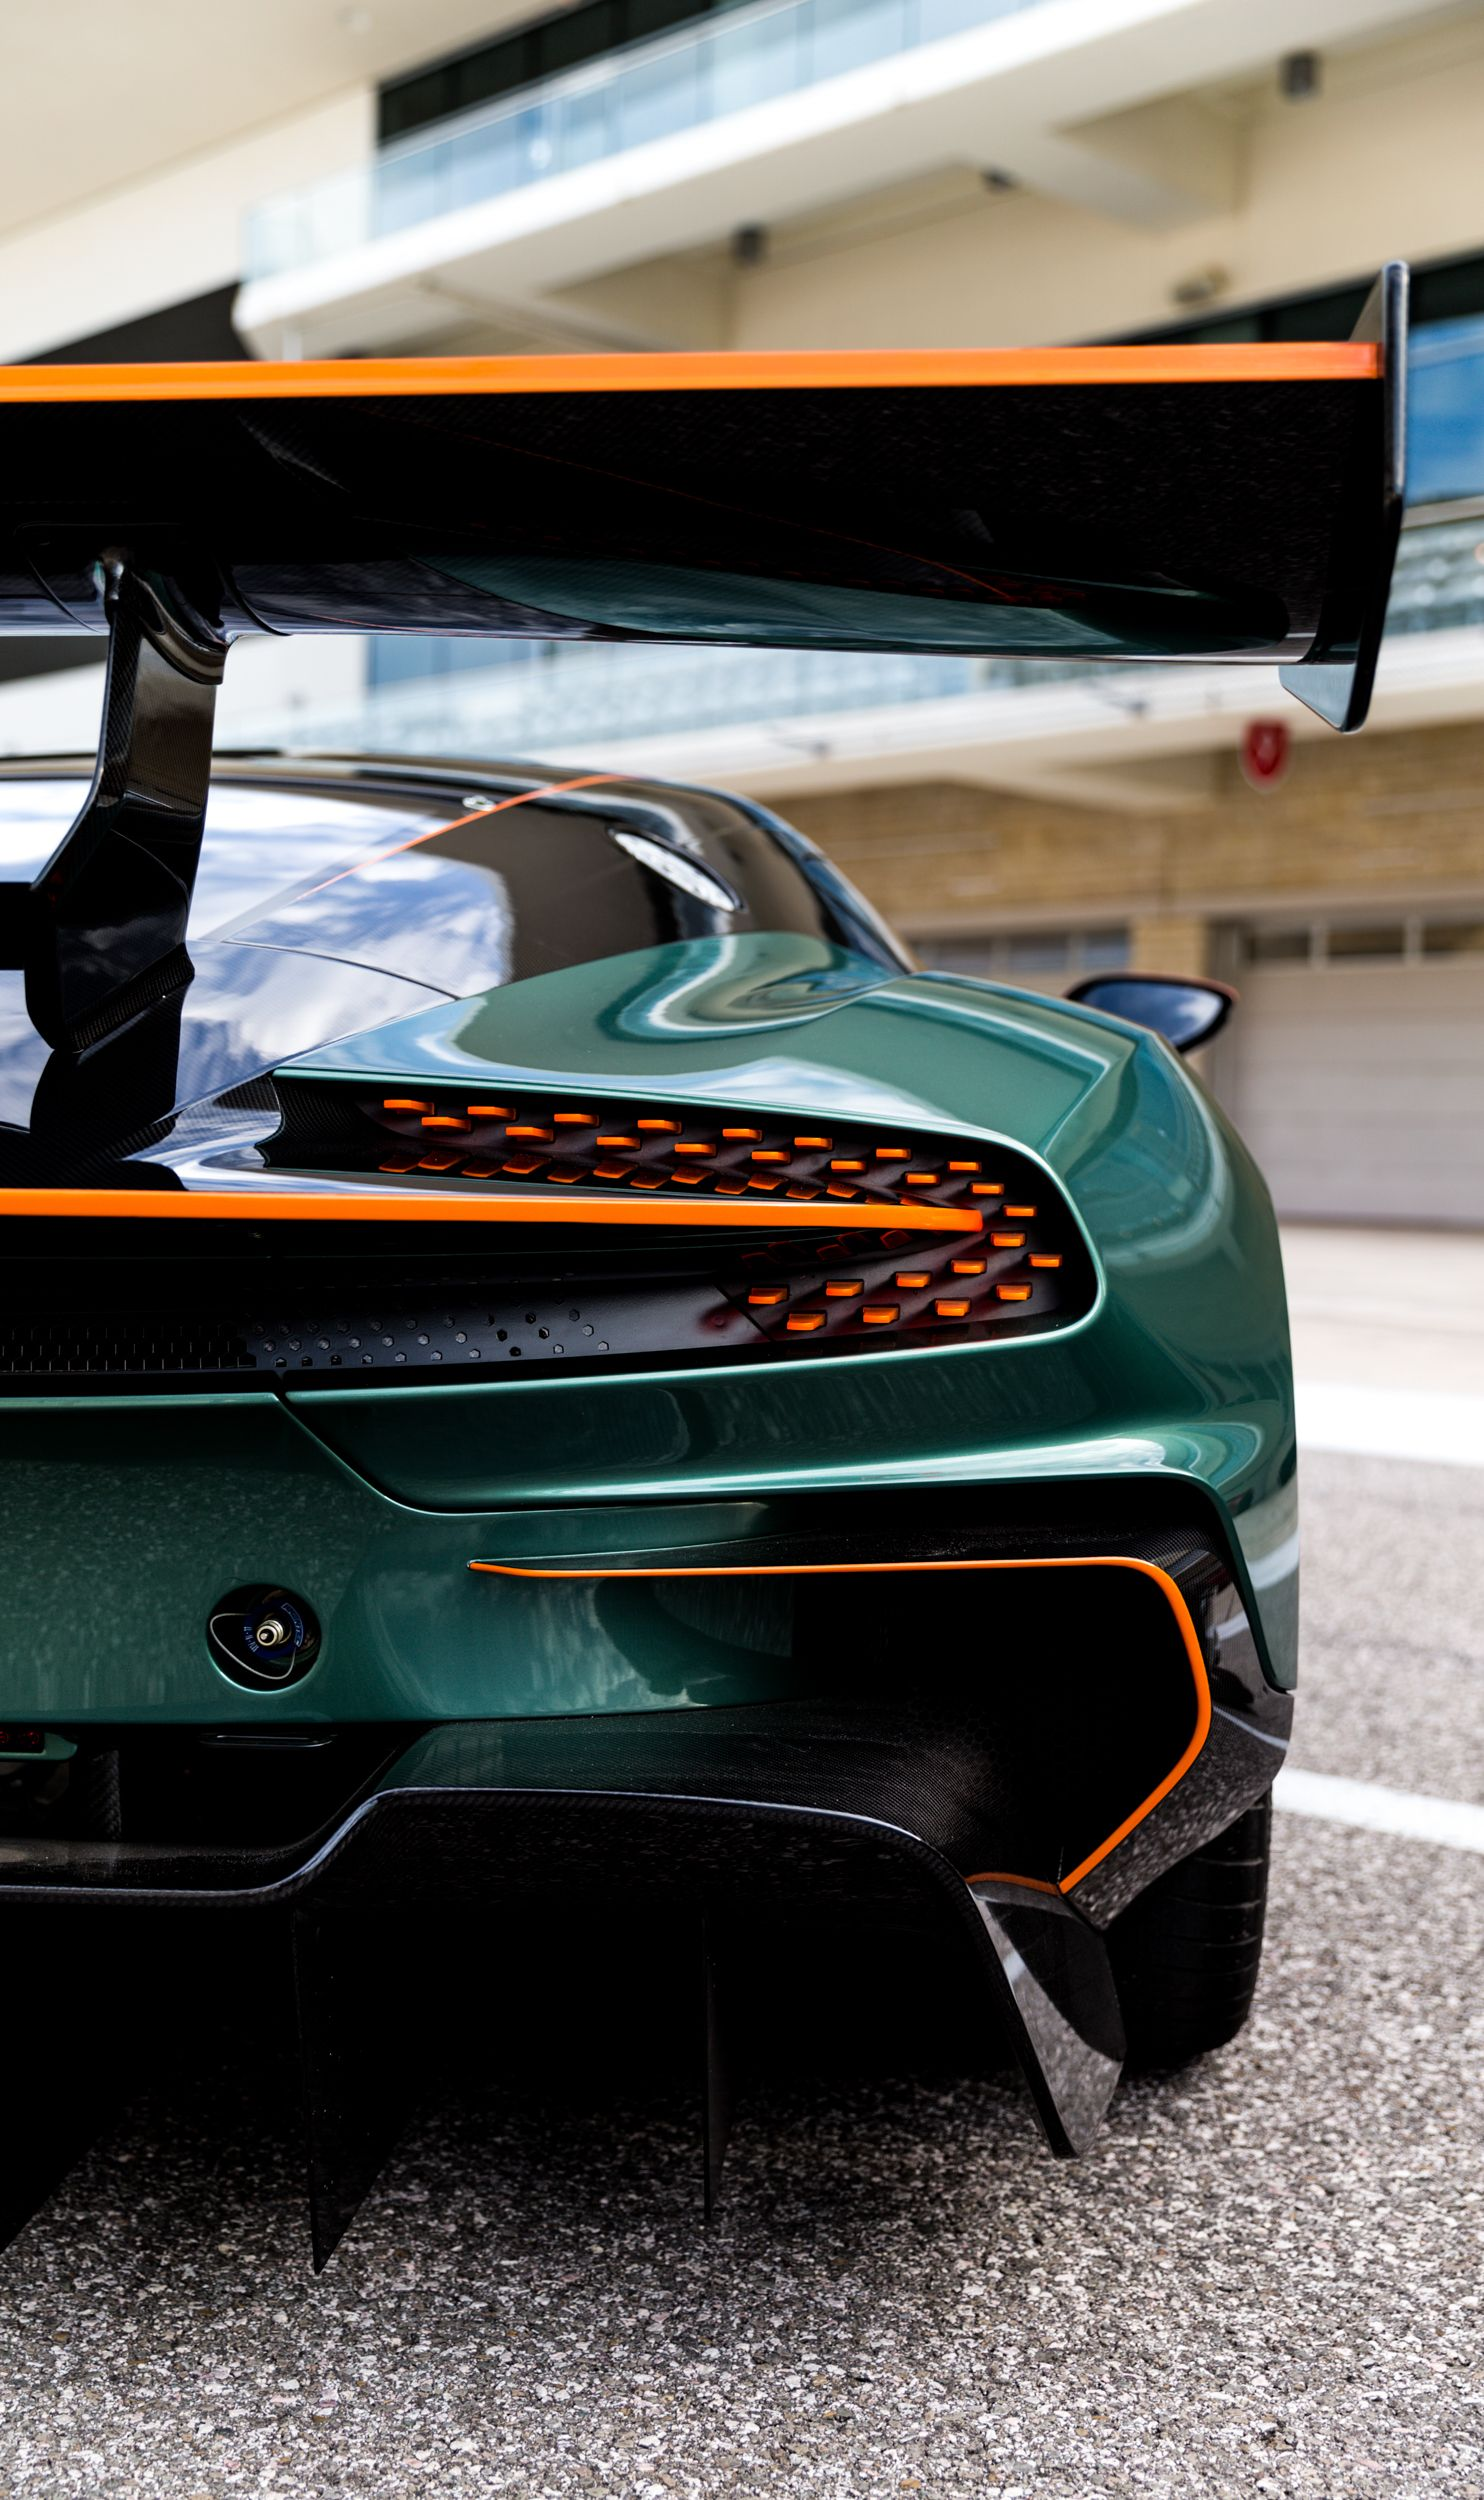 Behold The Unfathomably Gorgeous Spectacle Of An Aston Martin Vulcan Track Day Aston Martin Vulcan Super Luxury Cars Super Cars